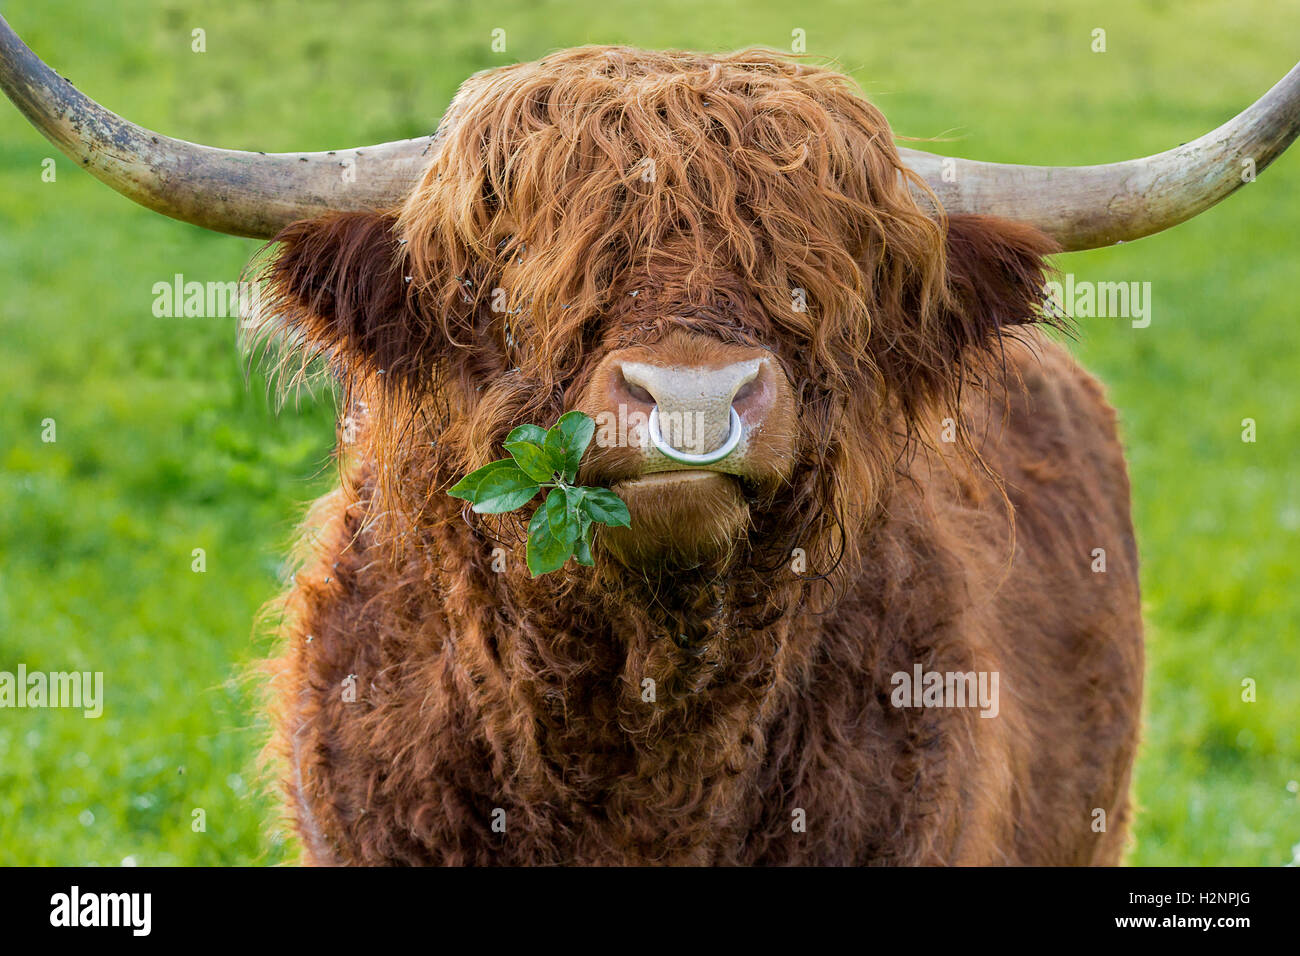 Unfiltered version of leaves chewing highland cattle bull with iron nose ring on a green meadow. - Stock Image